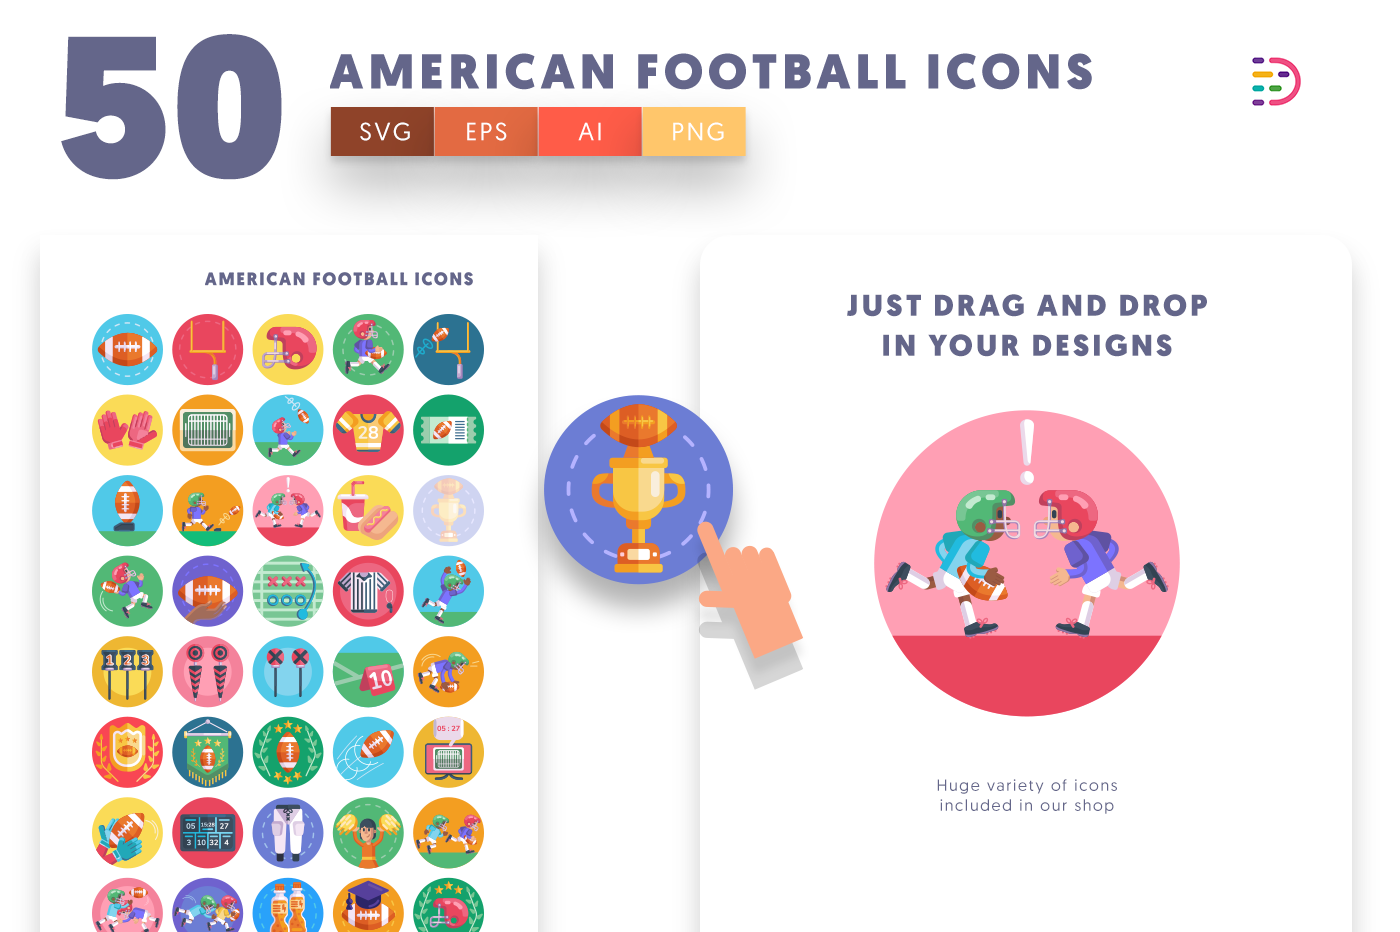 Drag and drop vector 50 American Football Icons